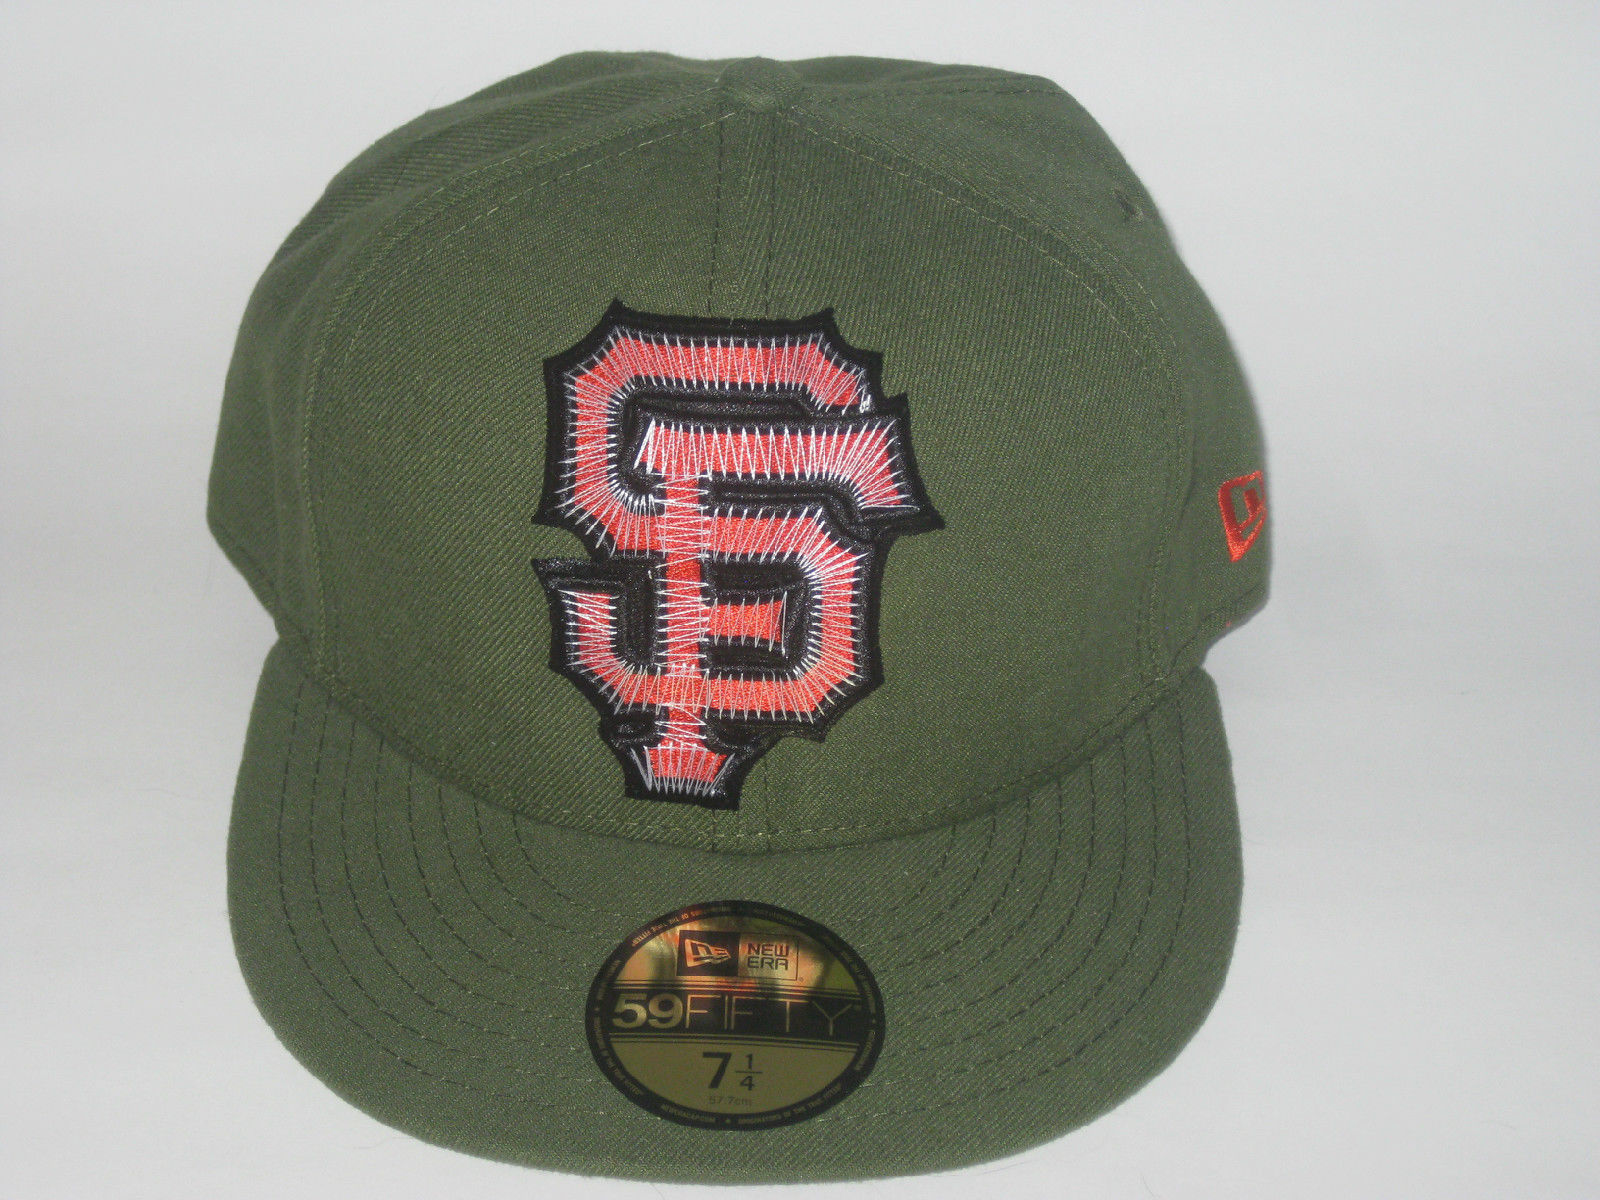 factory authentic 5d859 0b56b New Era San Francisco Giants Rifle Green and 50 similar items